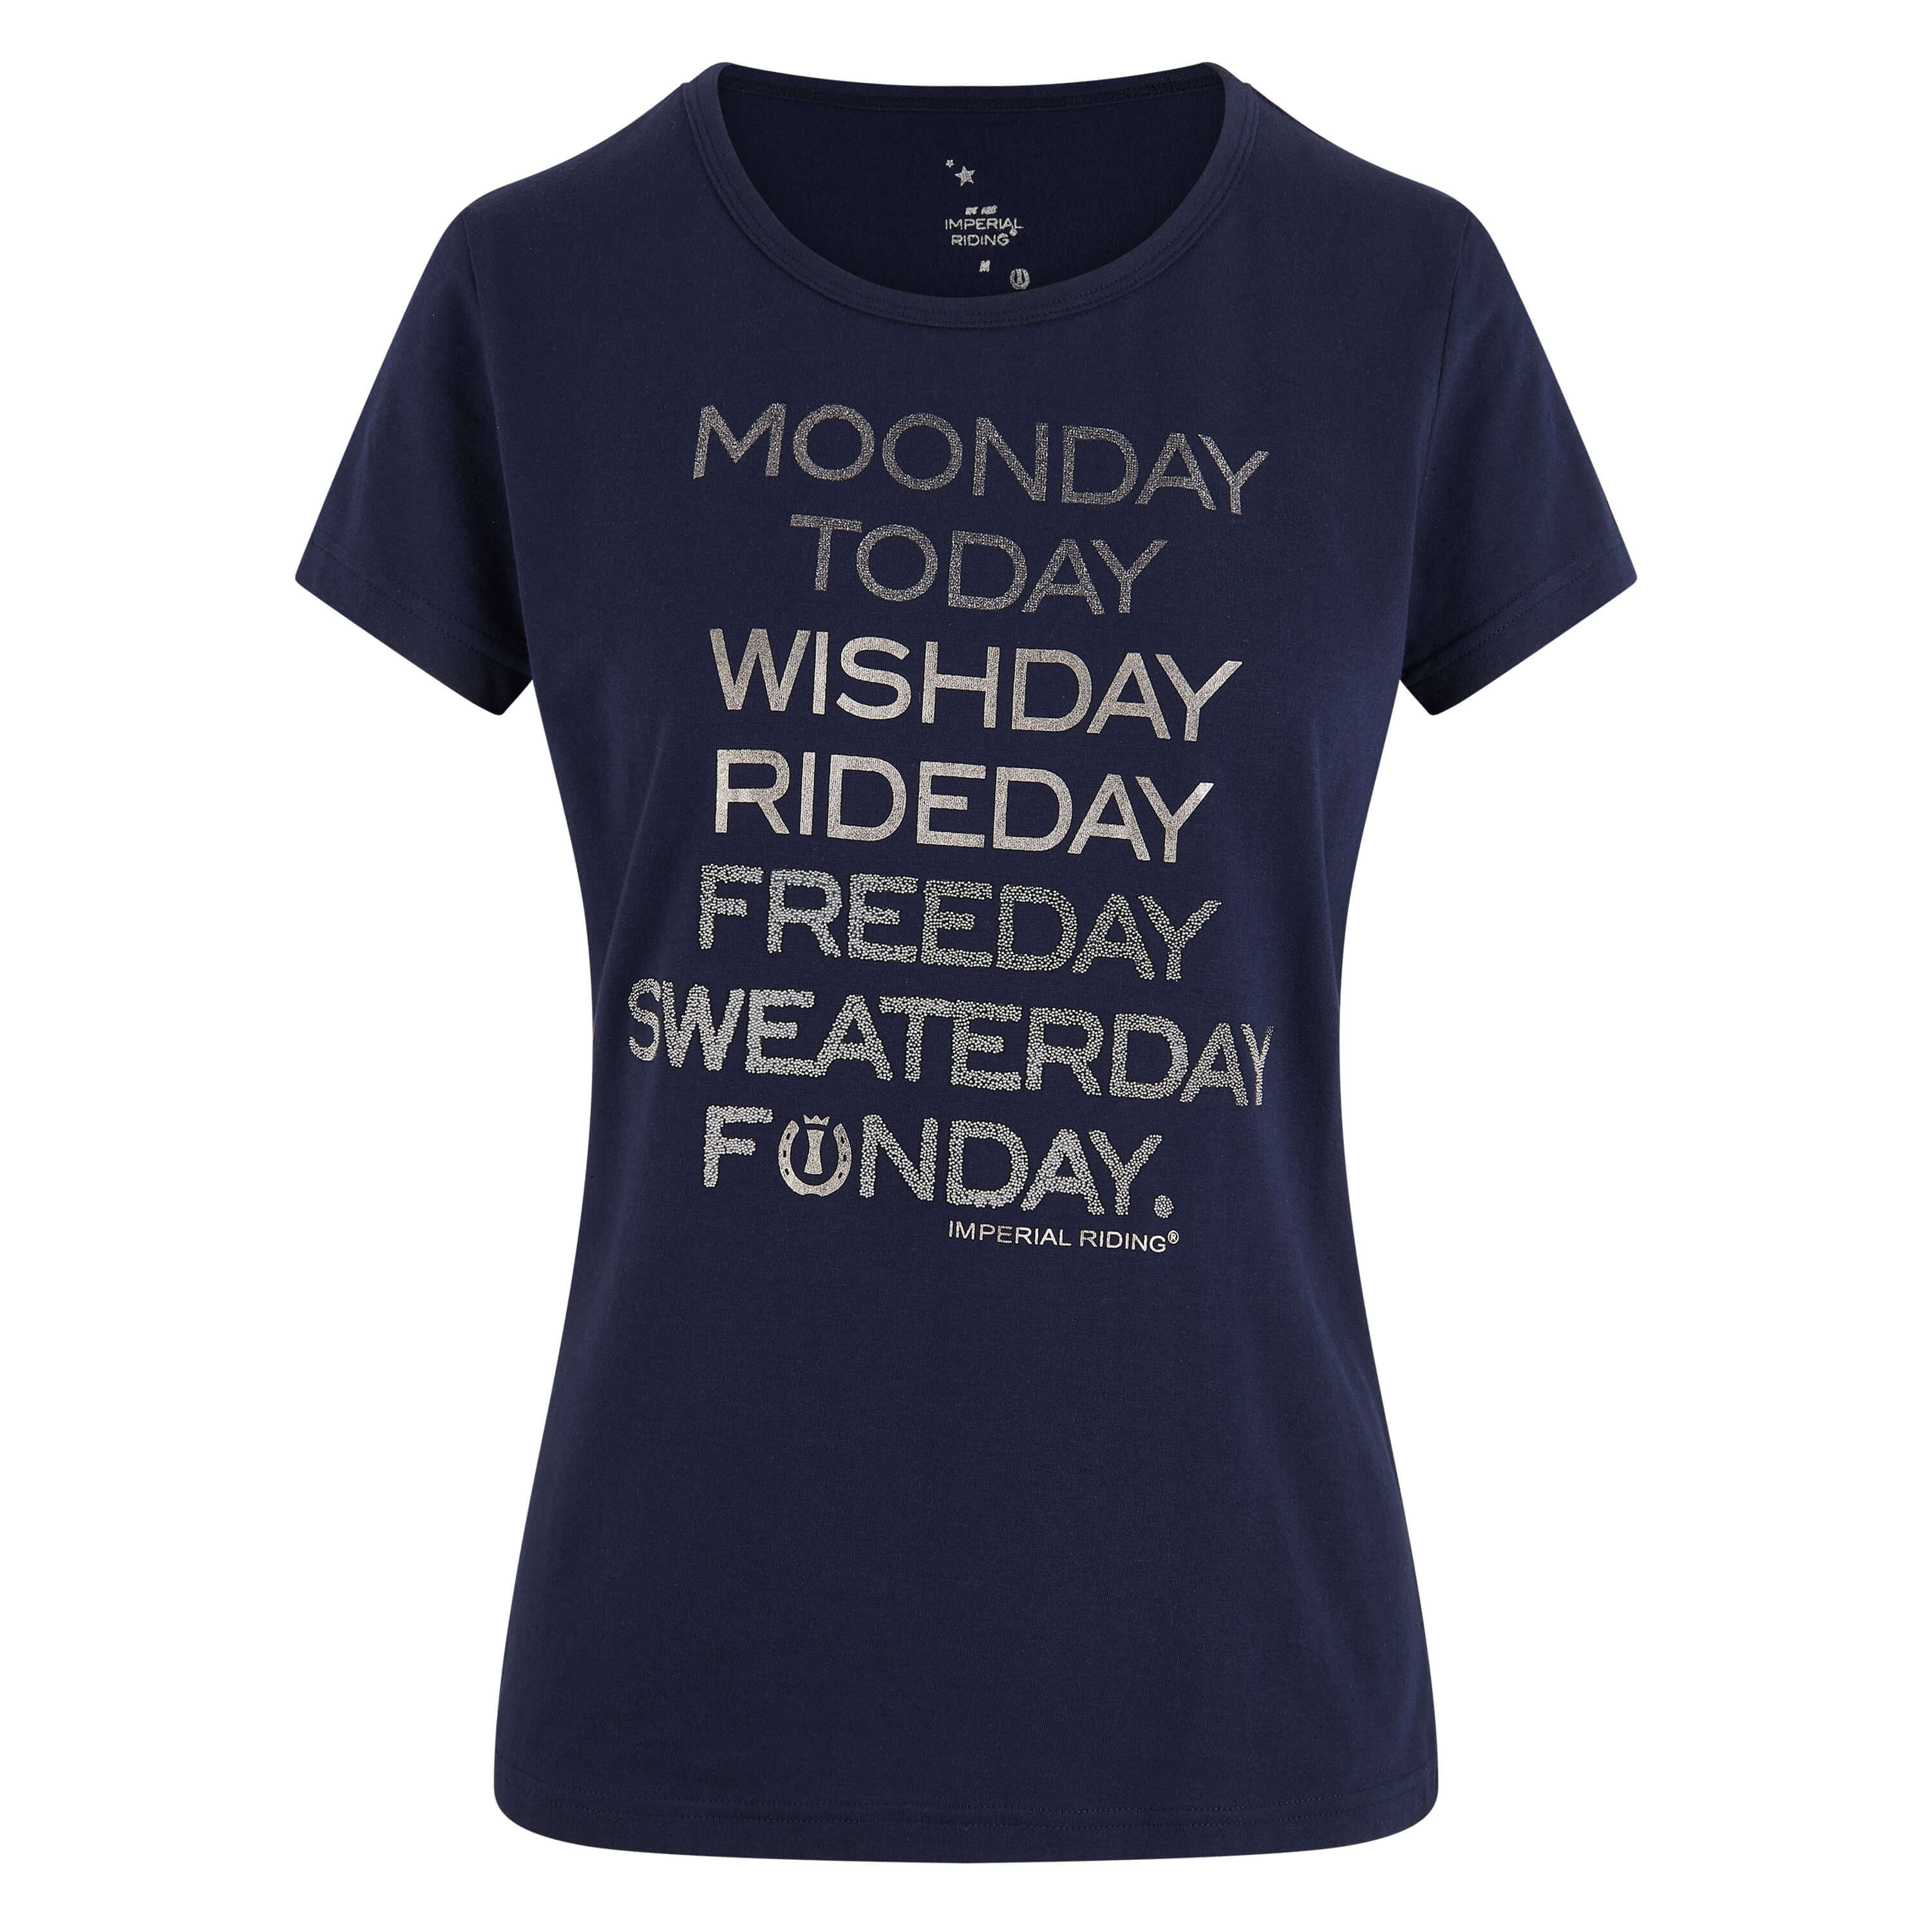 Imperial Riding T-shirt Moonday